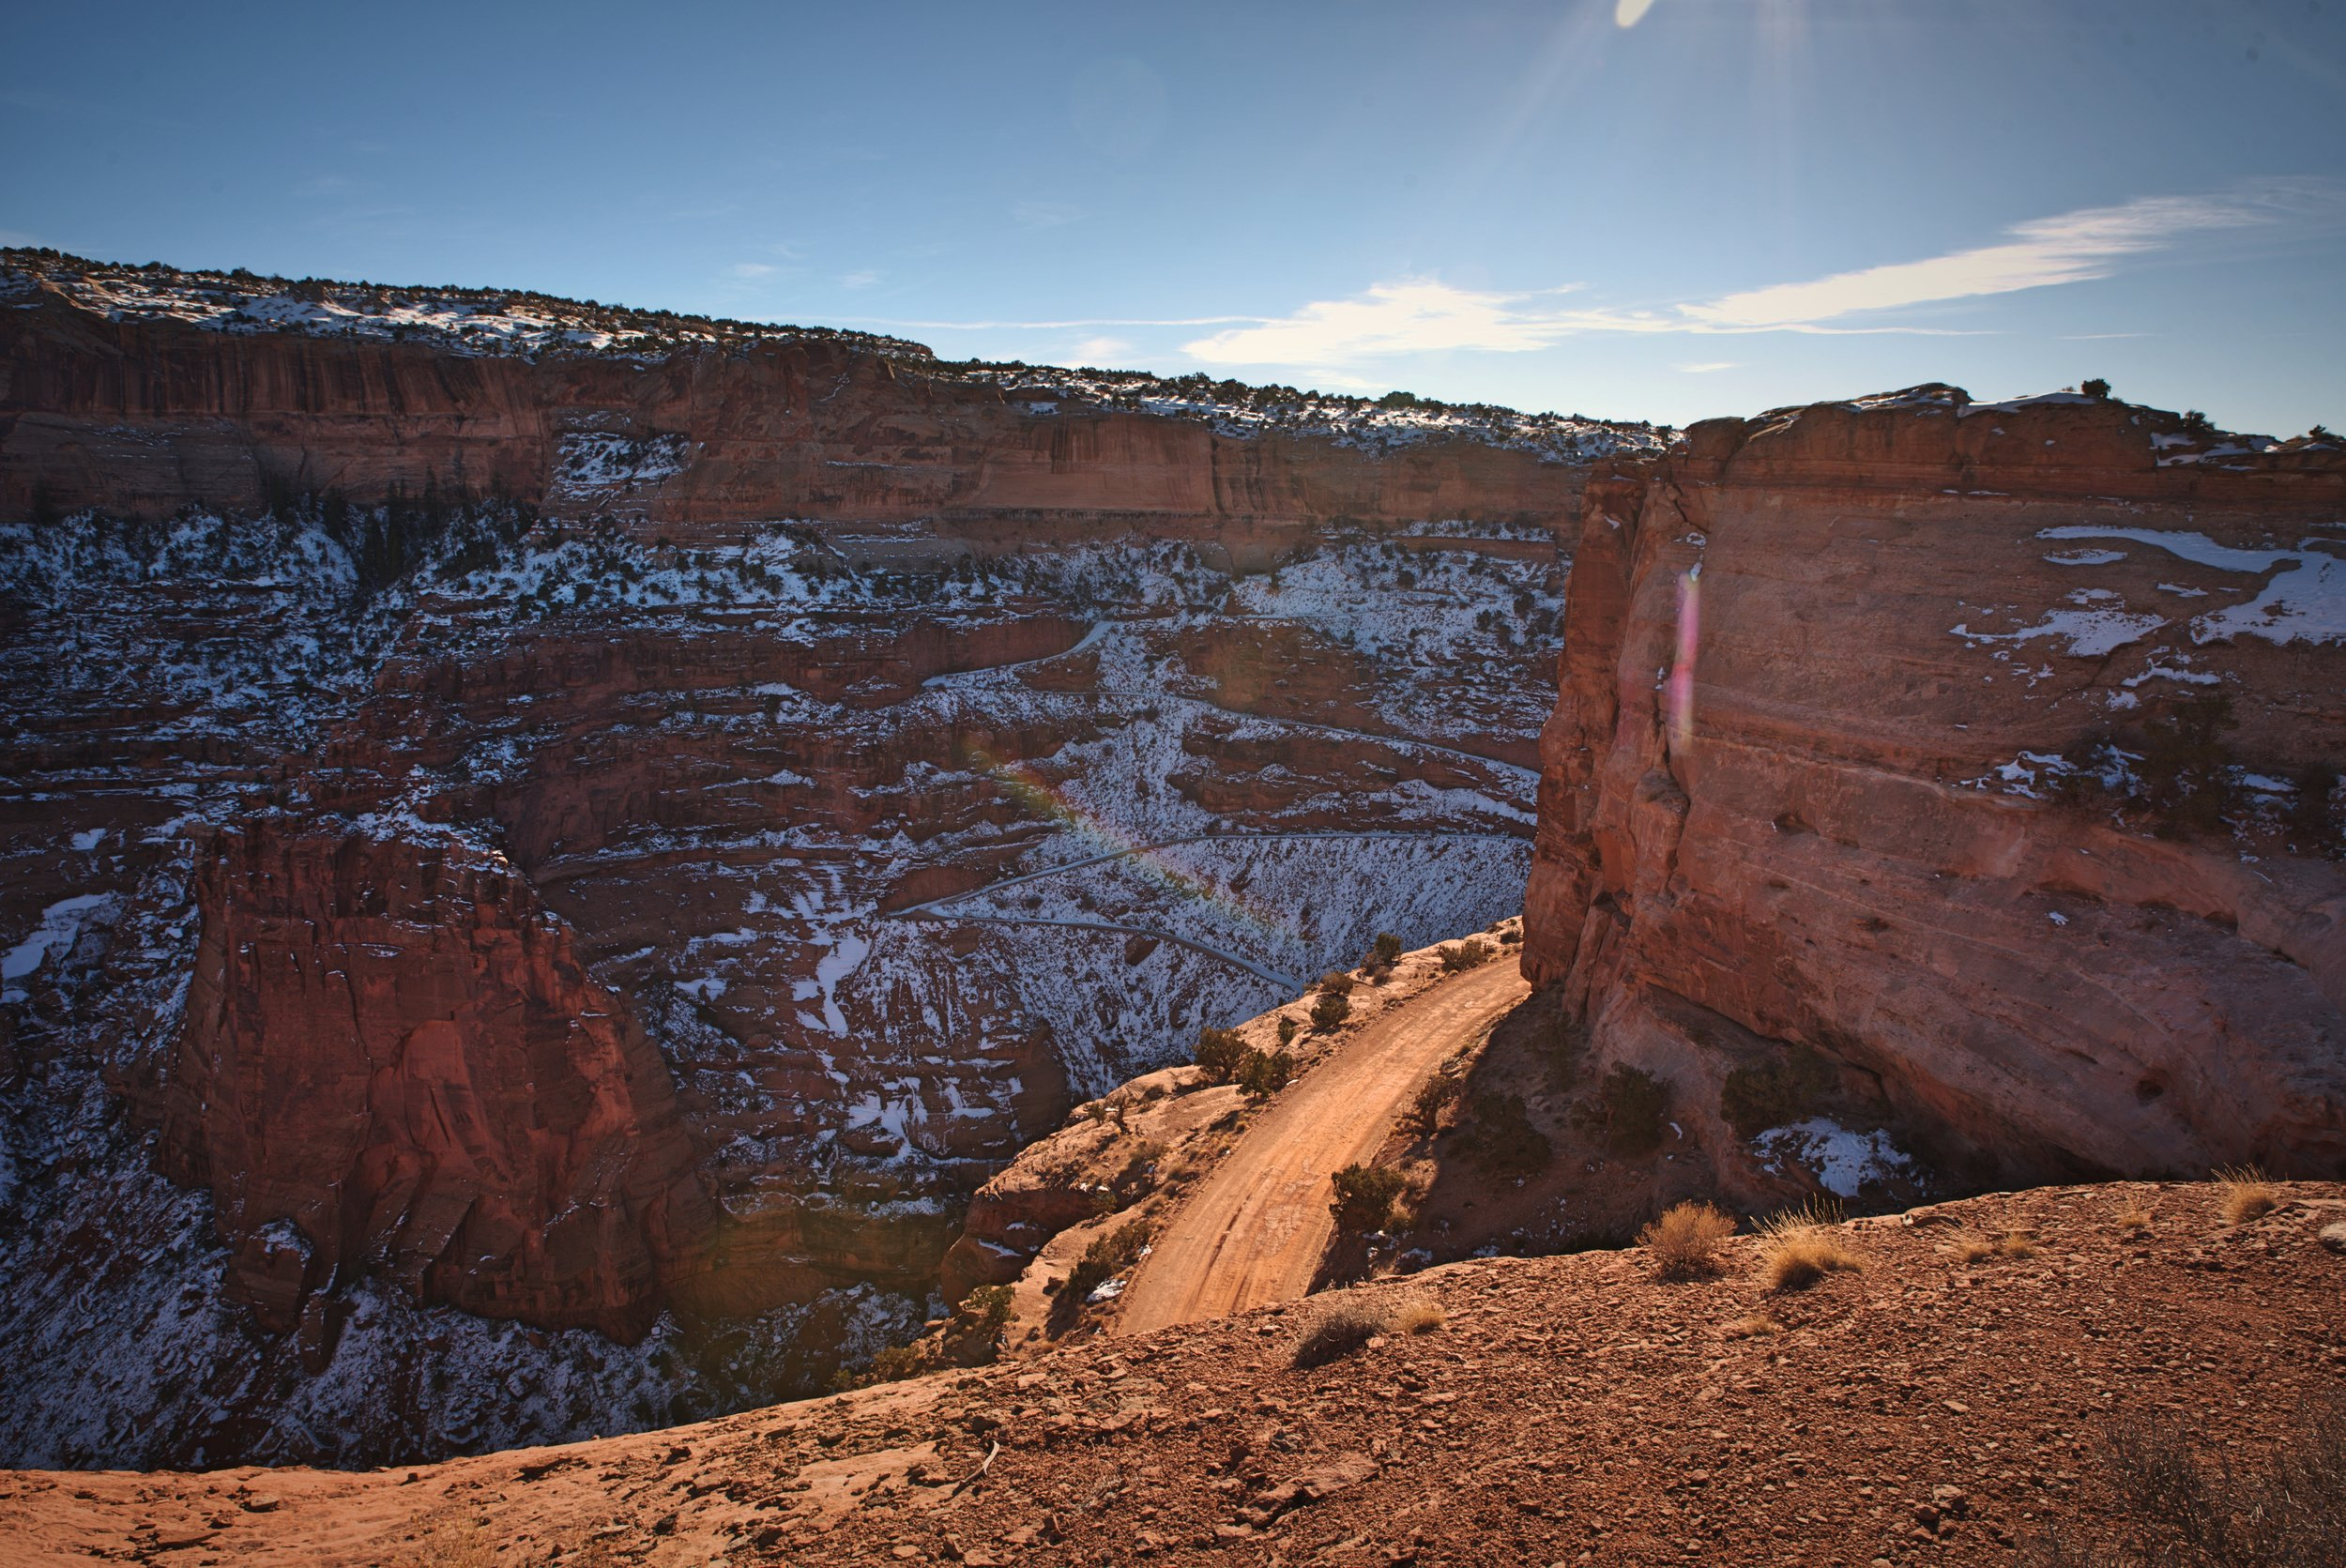 The Shafer Trail follows narrow ledges, and I can only imagine that it would be a pretty intense drive!